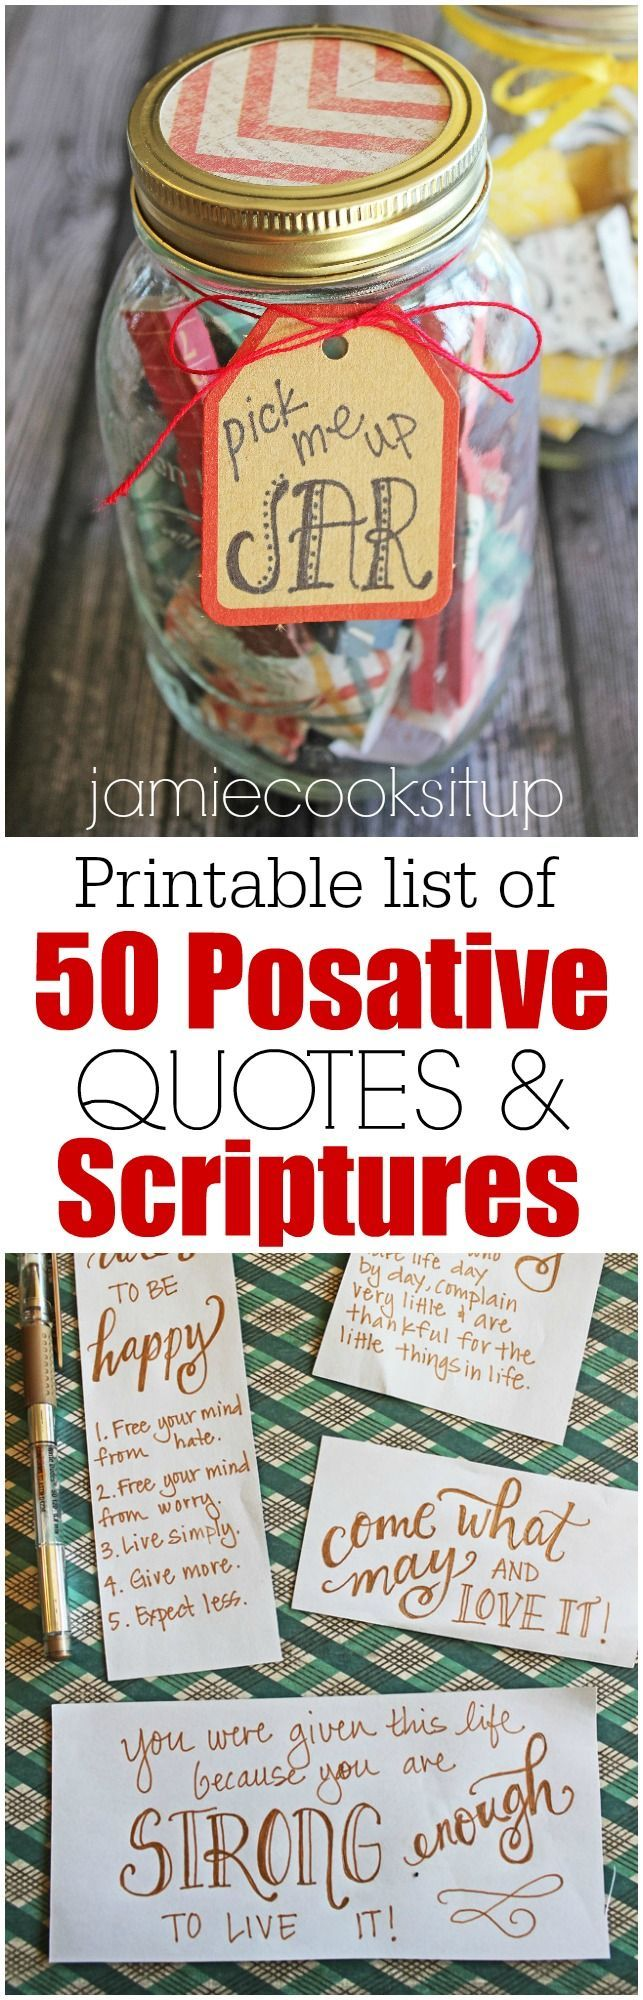 Printable list of positive quotes and scriptures